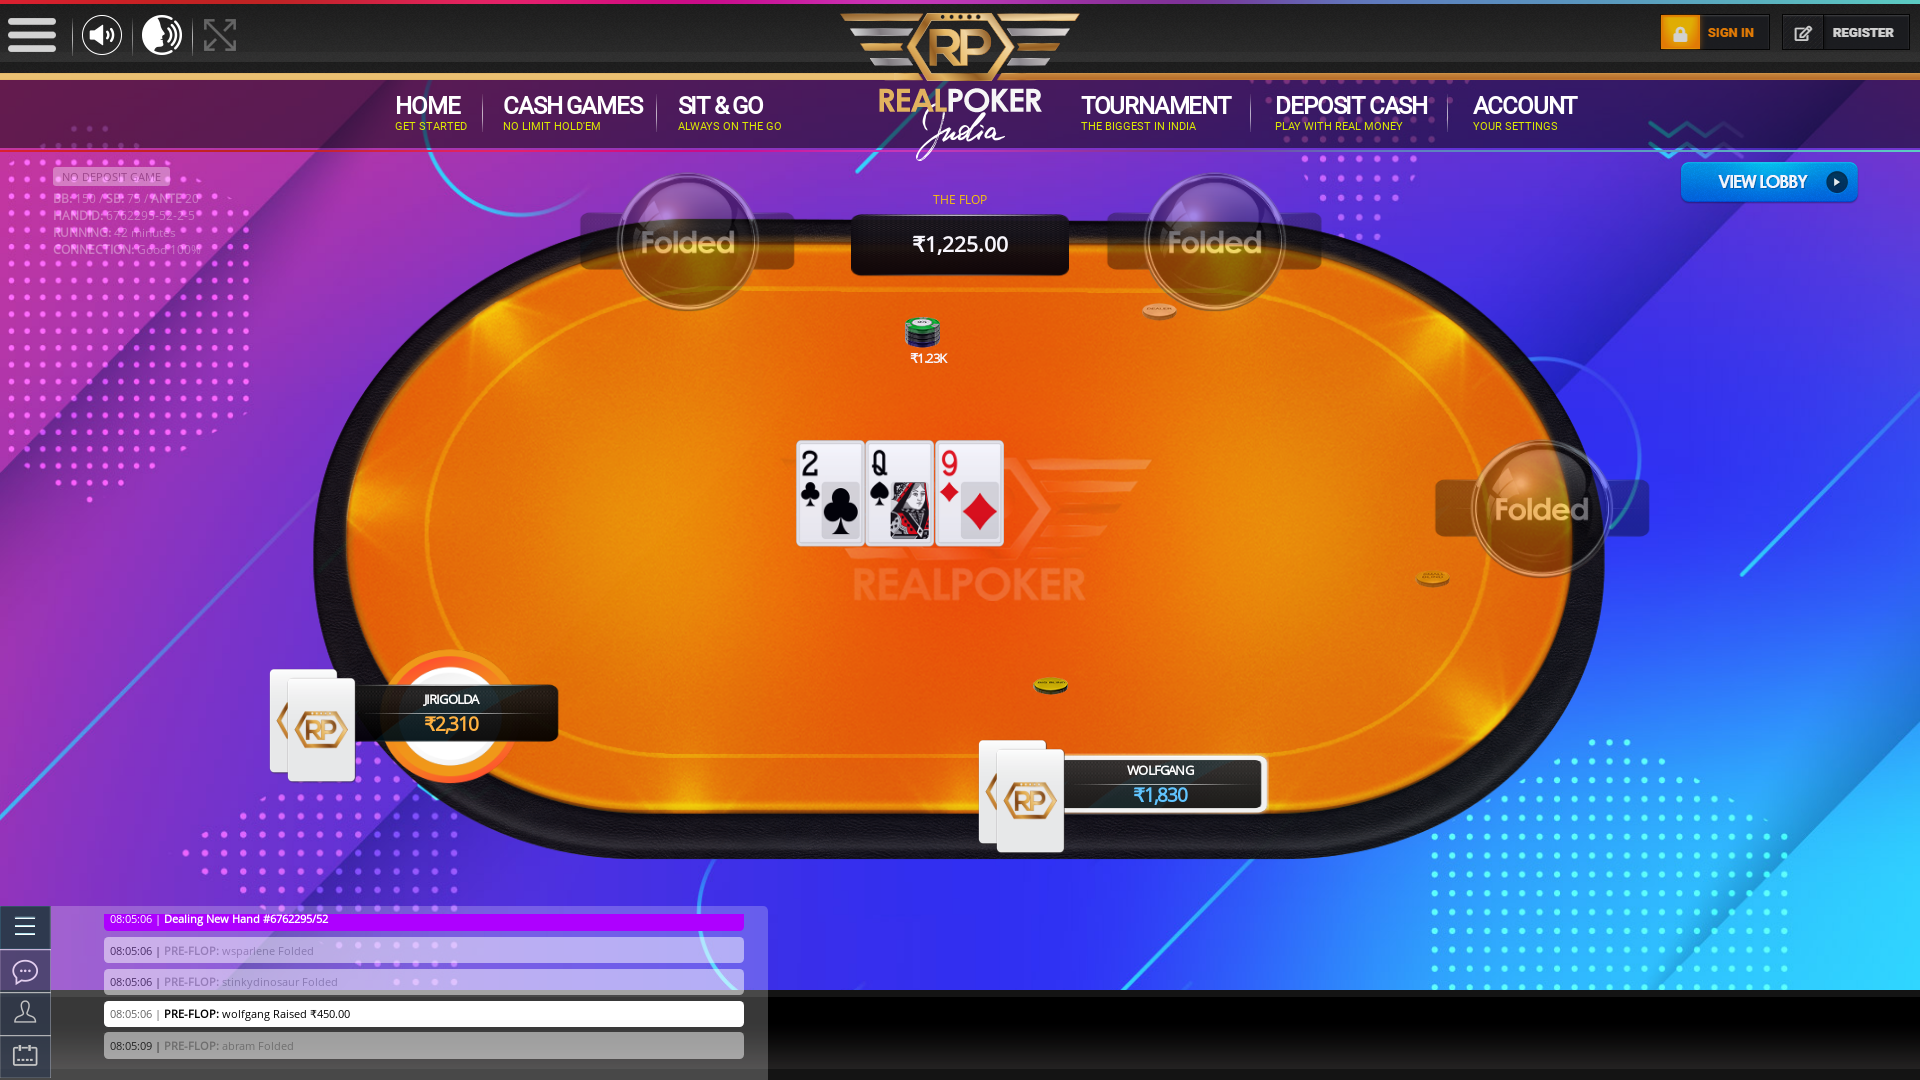 indian poker on a 10 player table in the 42nd minute